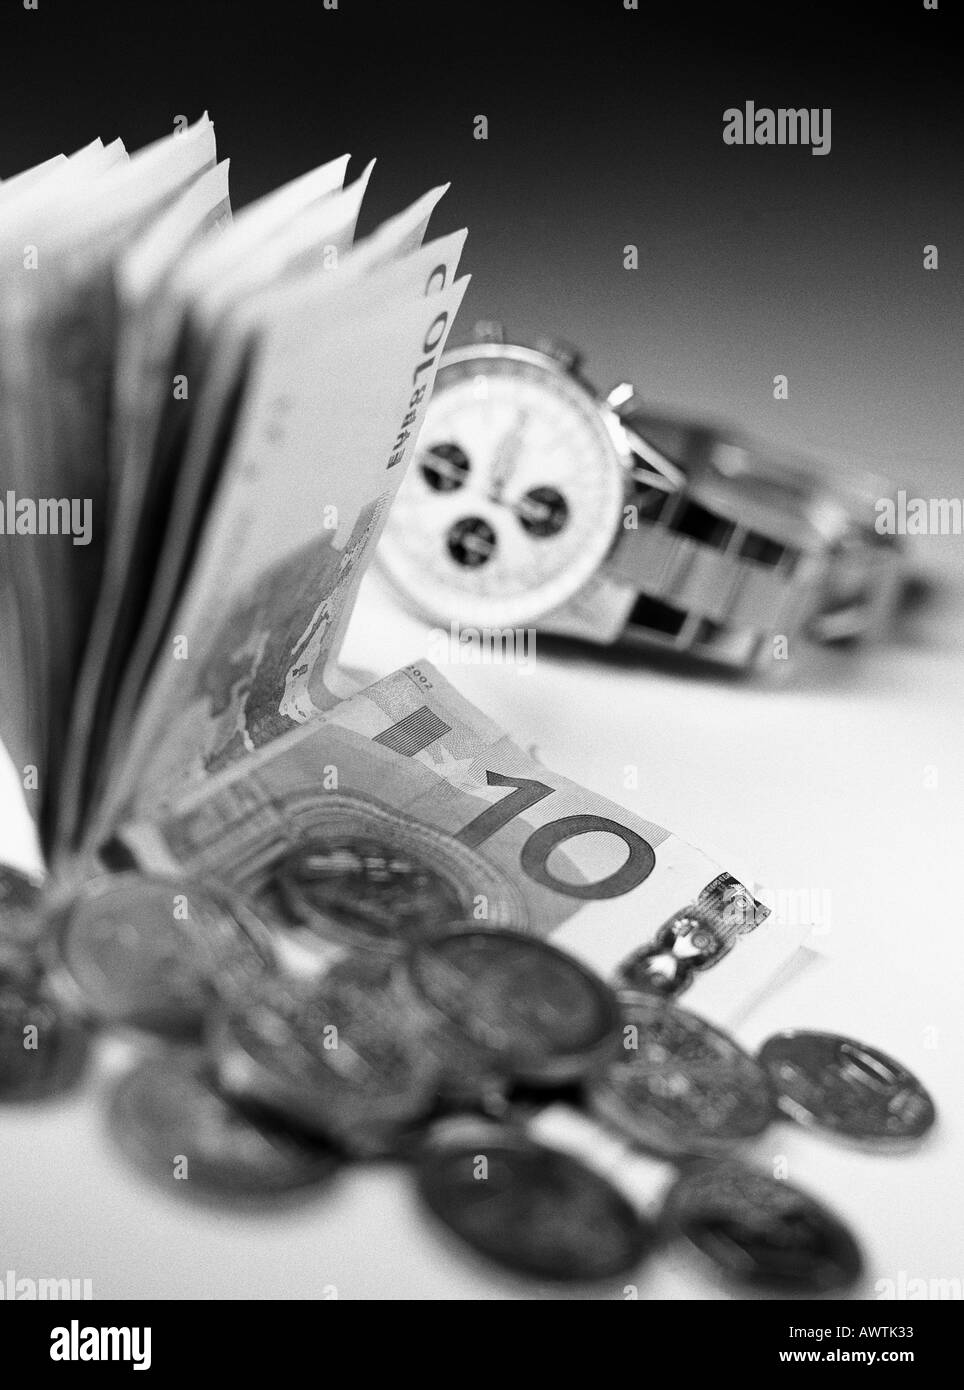 Money and watch, close-up Stock Photo